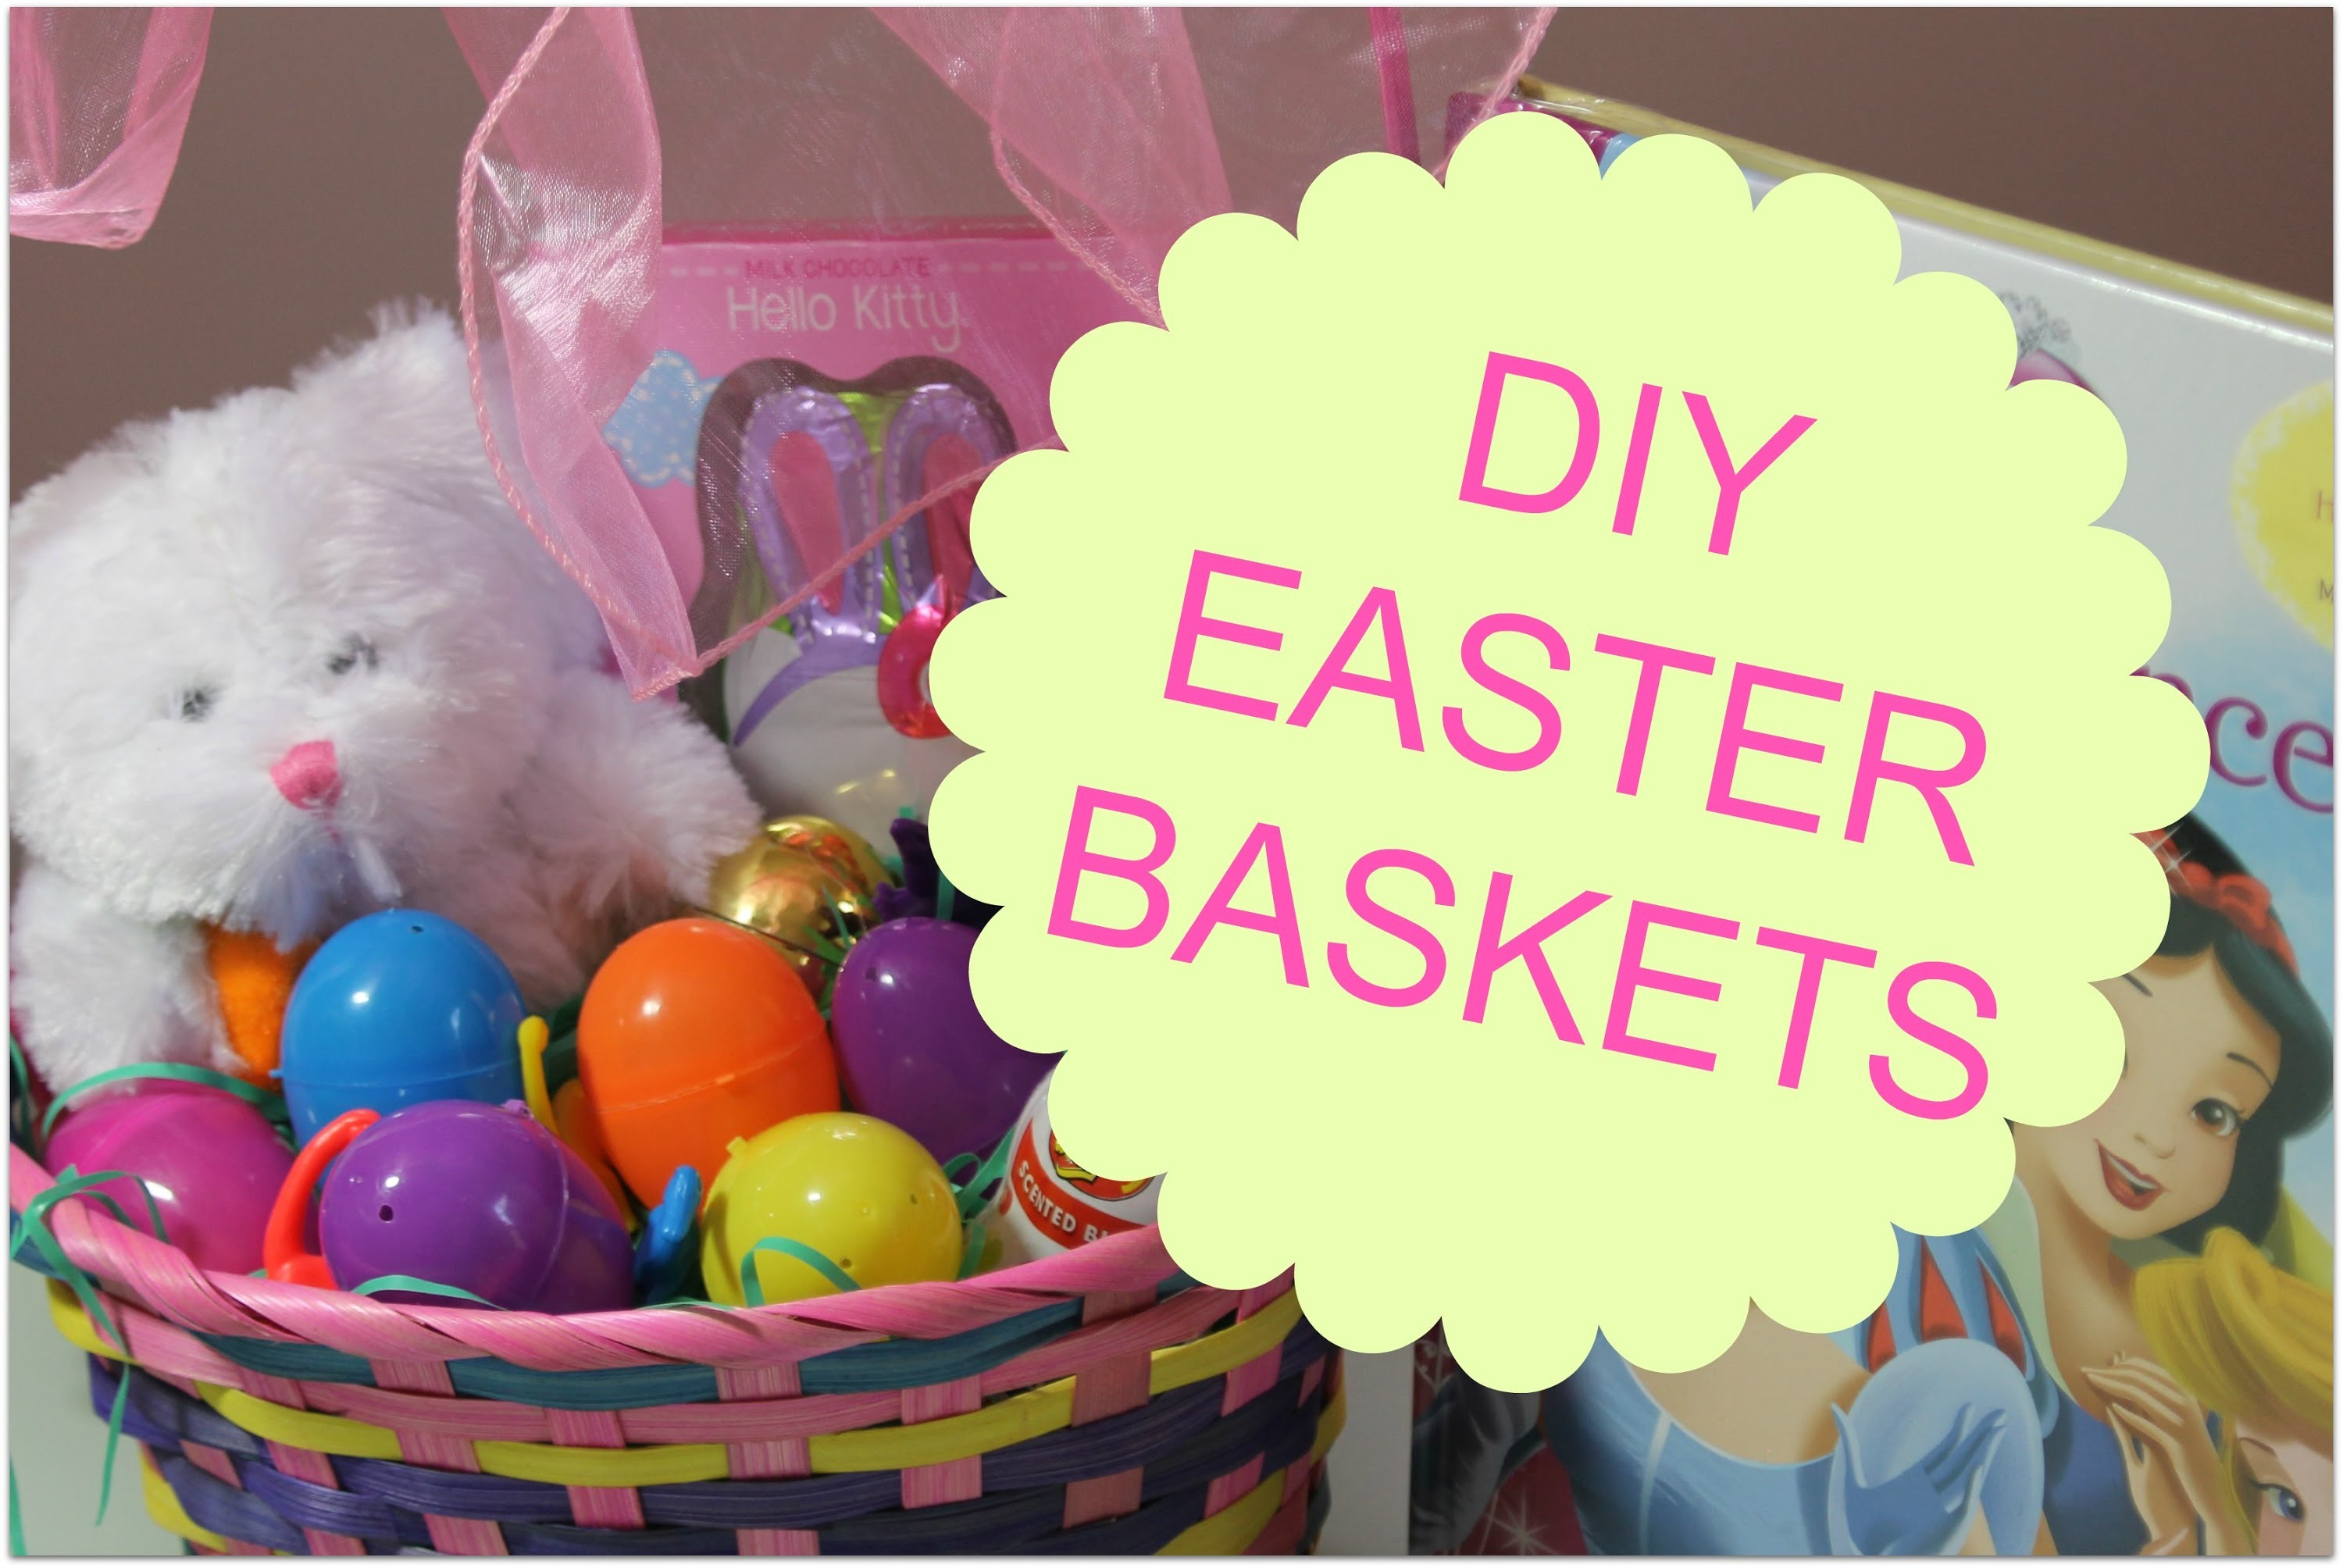 DIY Easter Basket- Quick and Easy!!